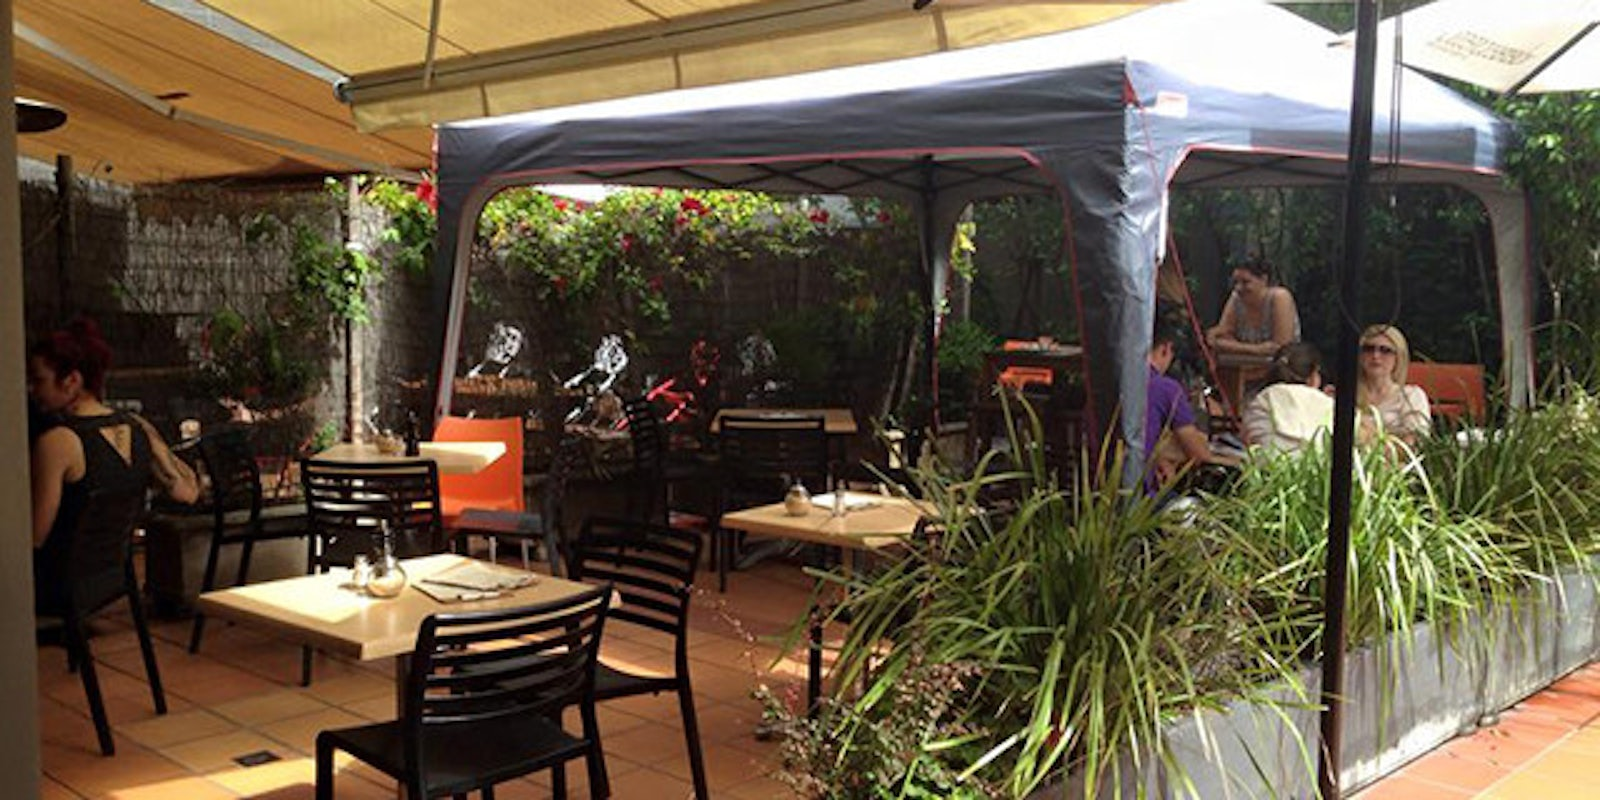 A picture of the outdoor patio at Buster Brown French Cafe and Bristro in Surry Hills Sydney